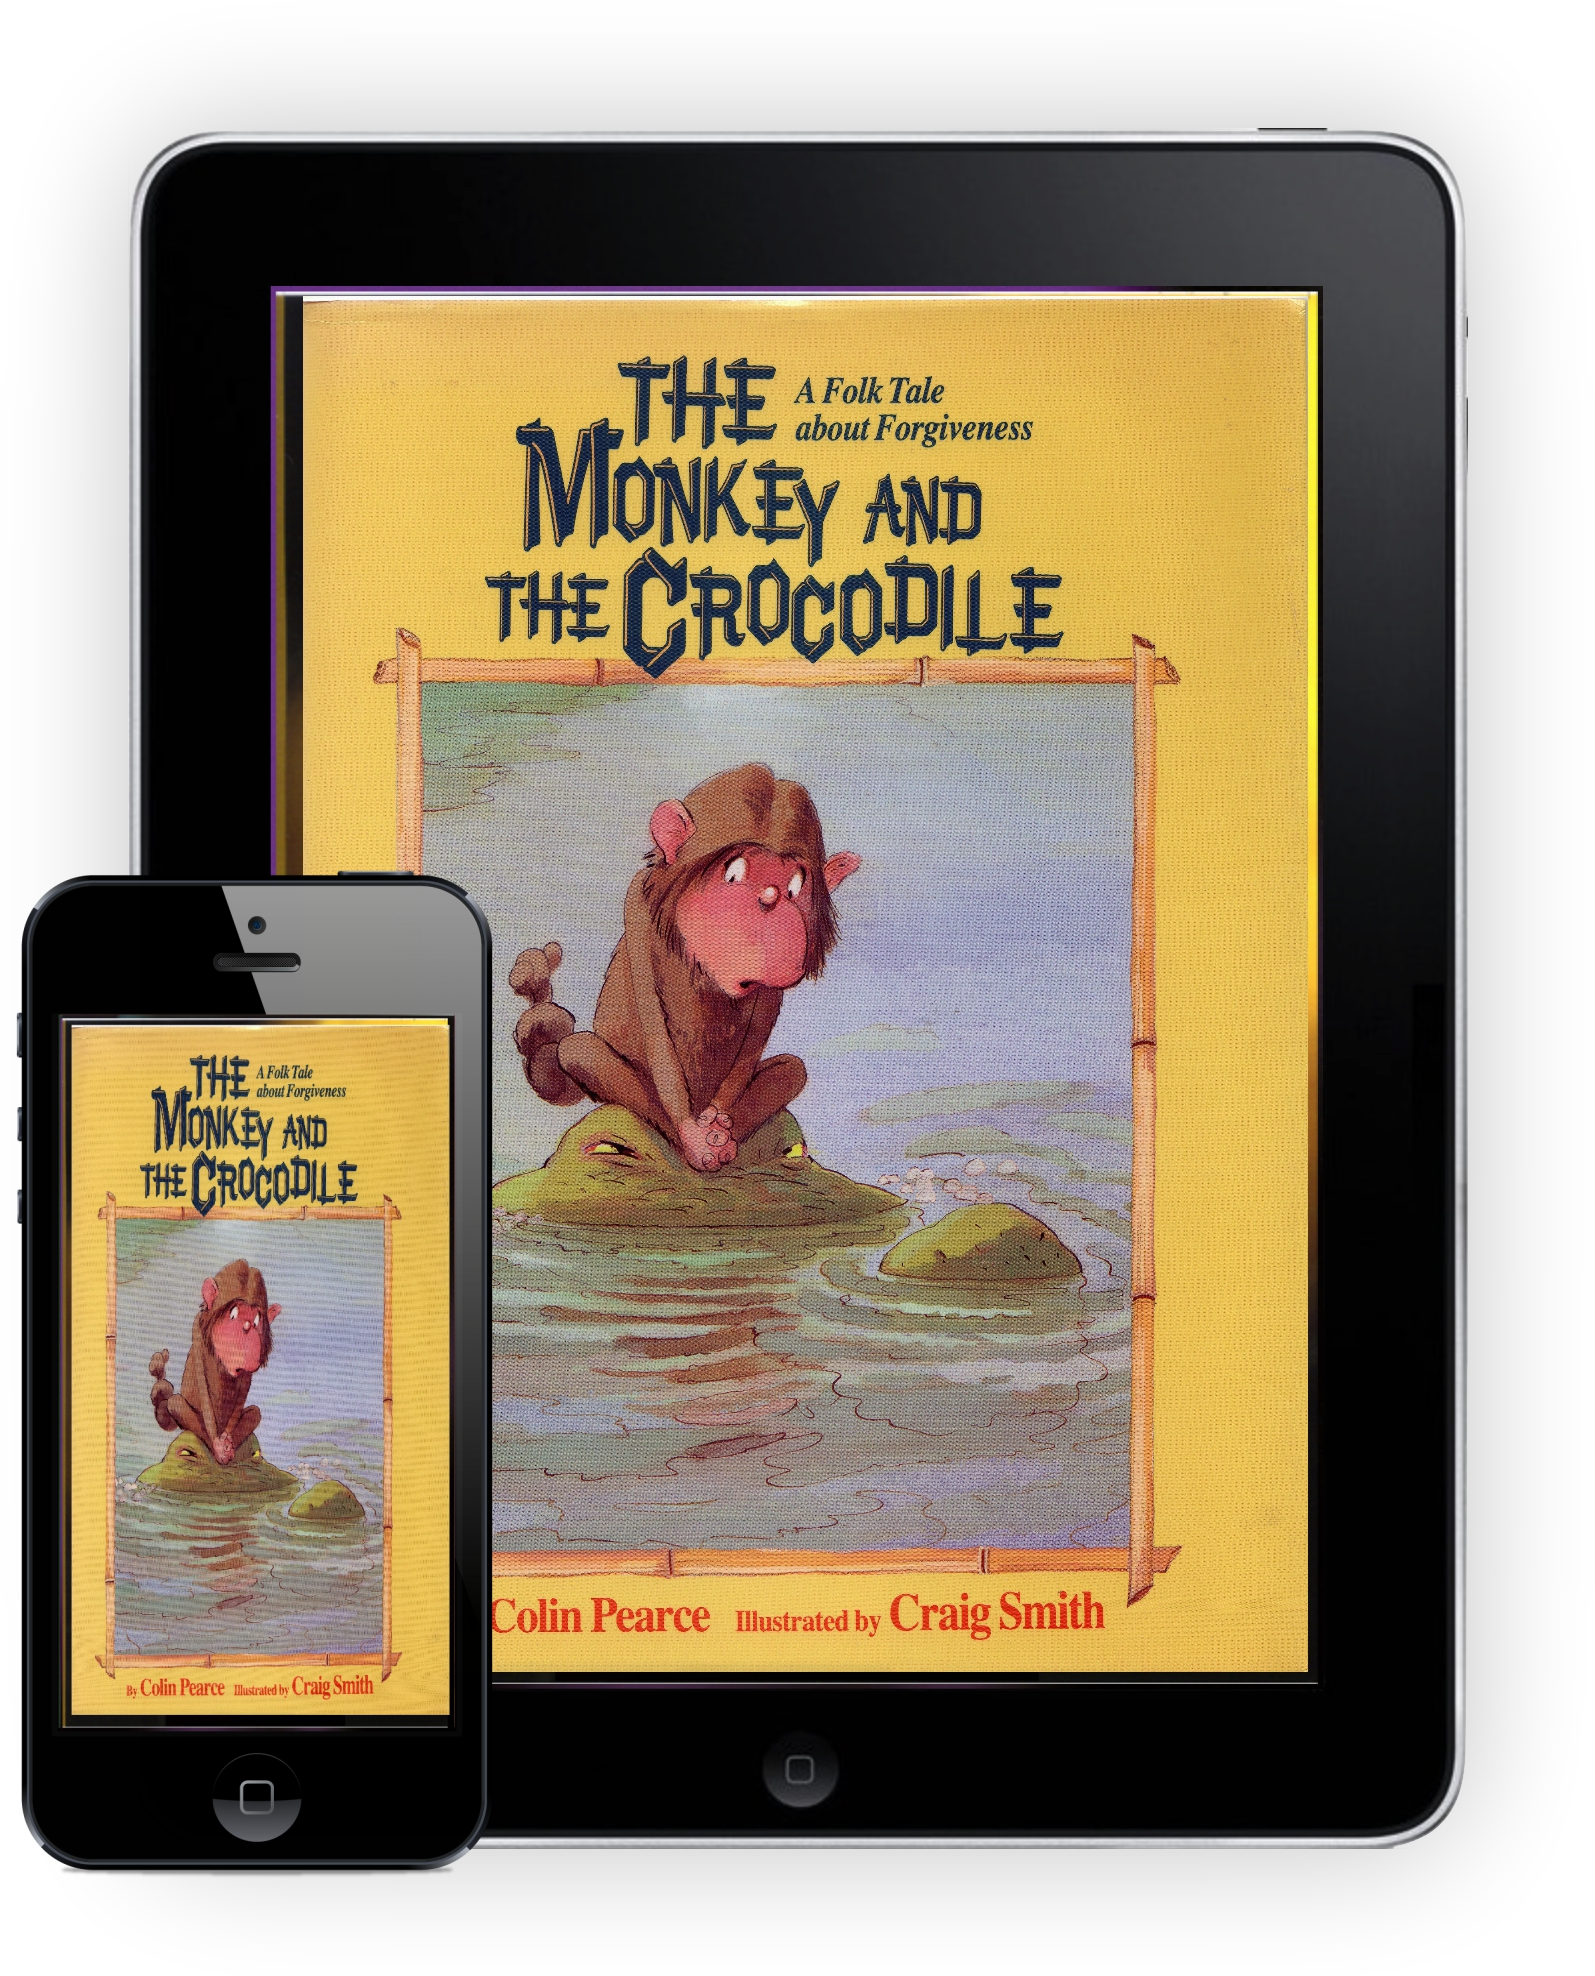 Monkey_and_Crocodile_Prose